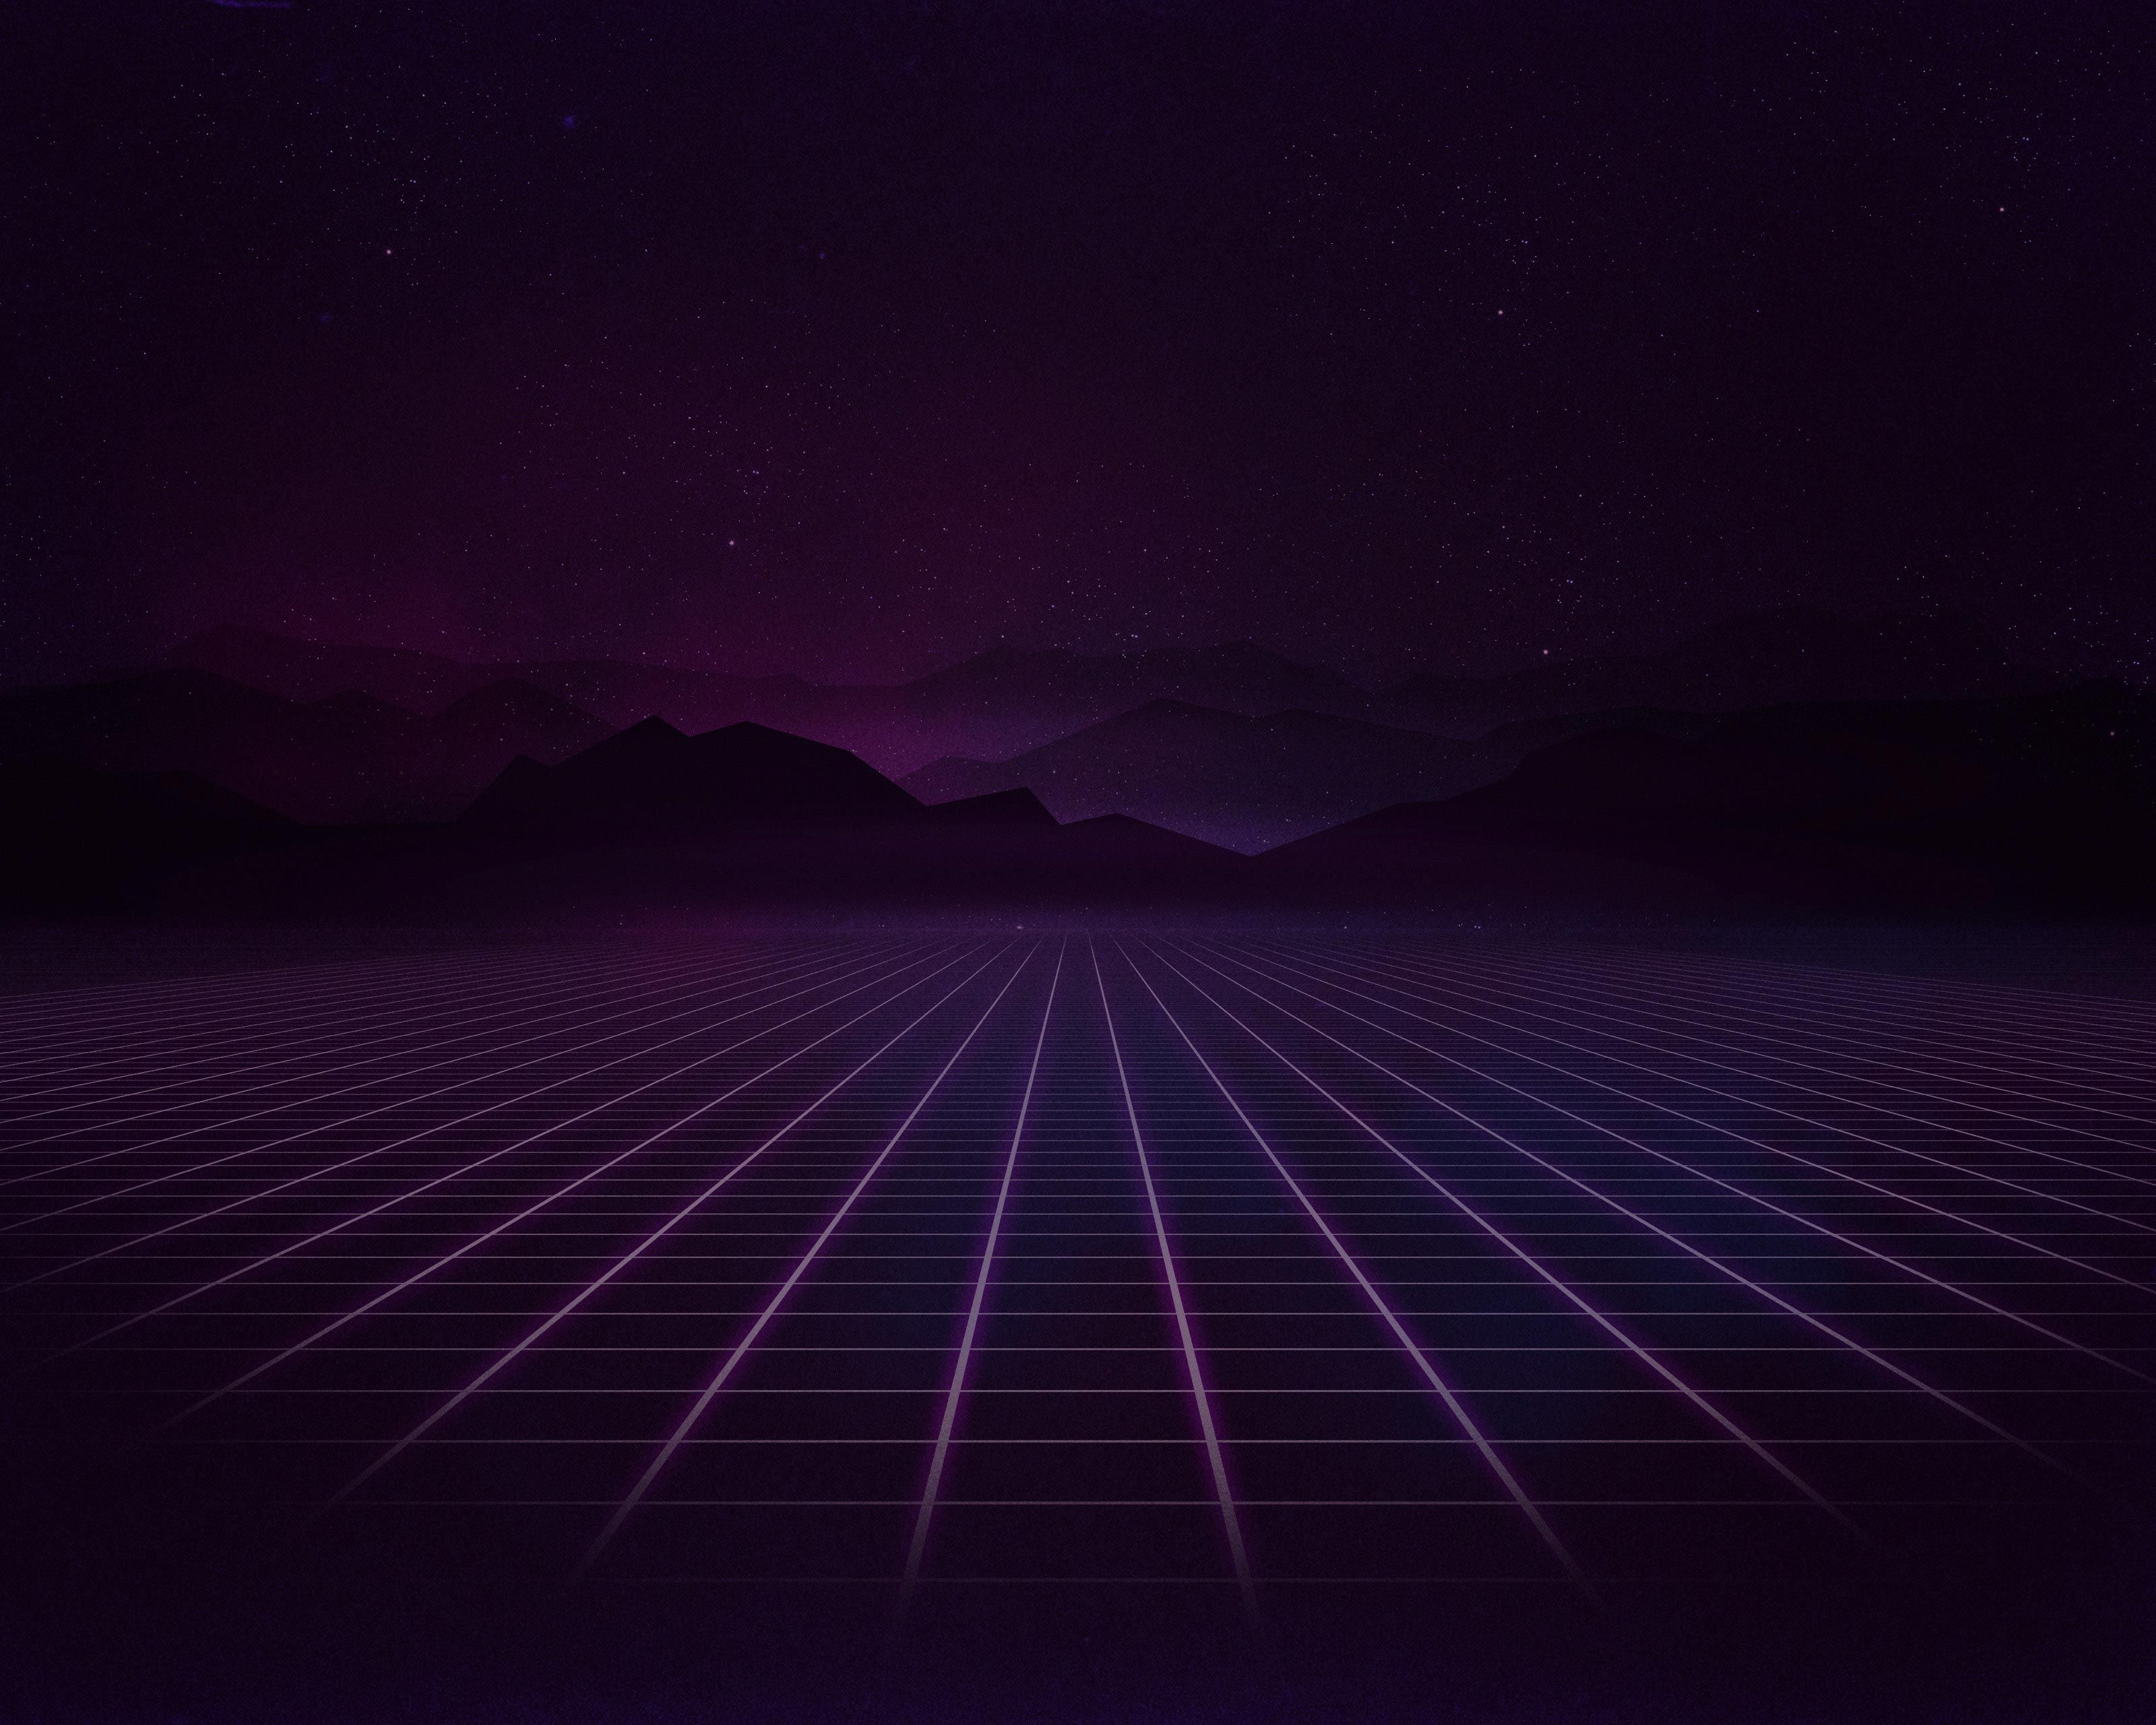 Animated Wallpaper Windows 8 Rad Pack 80 S Themed Hd Wallpapers Nate Wren Graphic